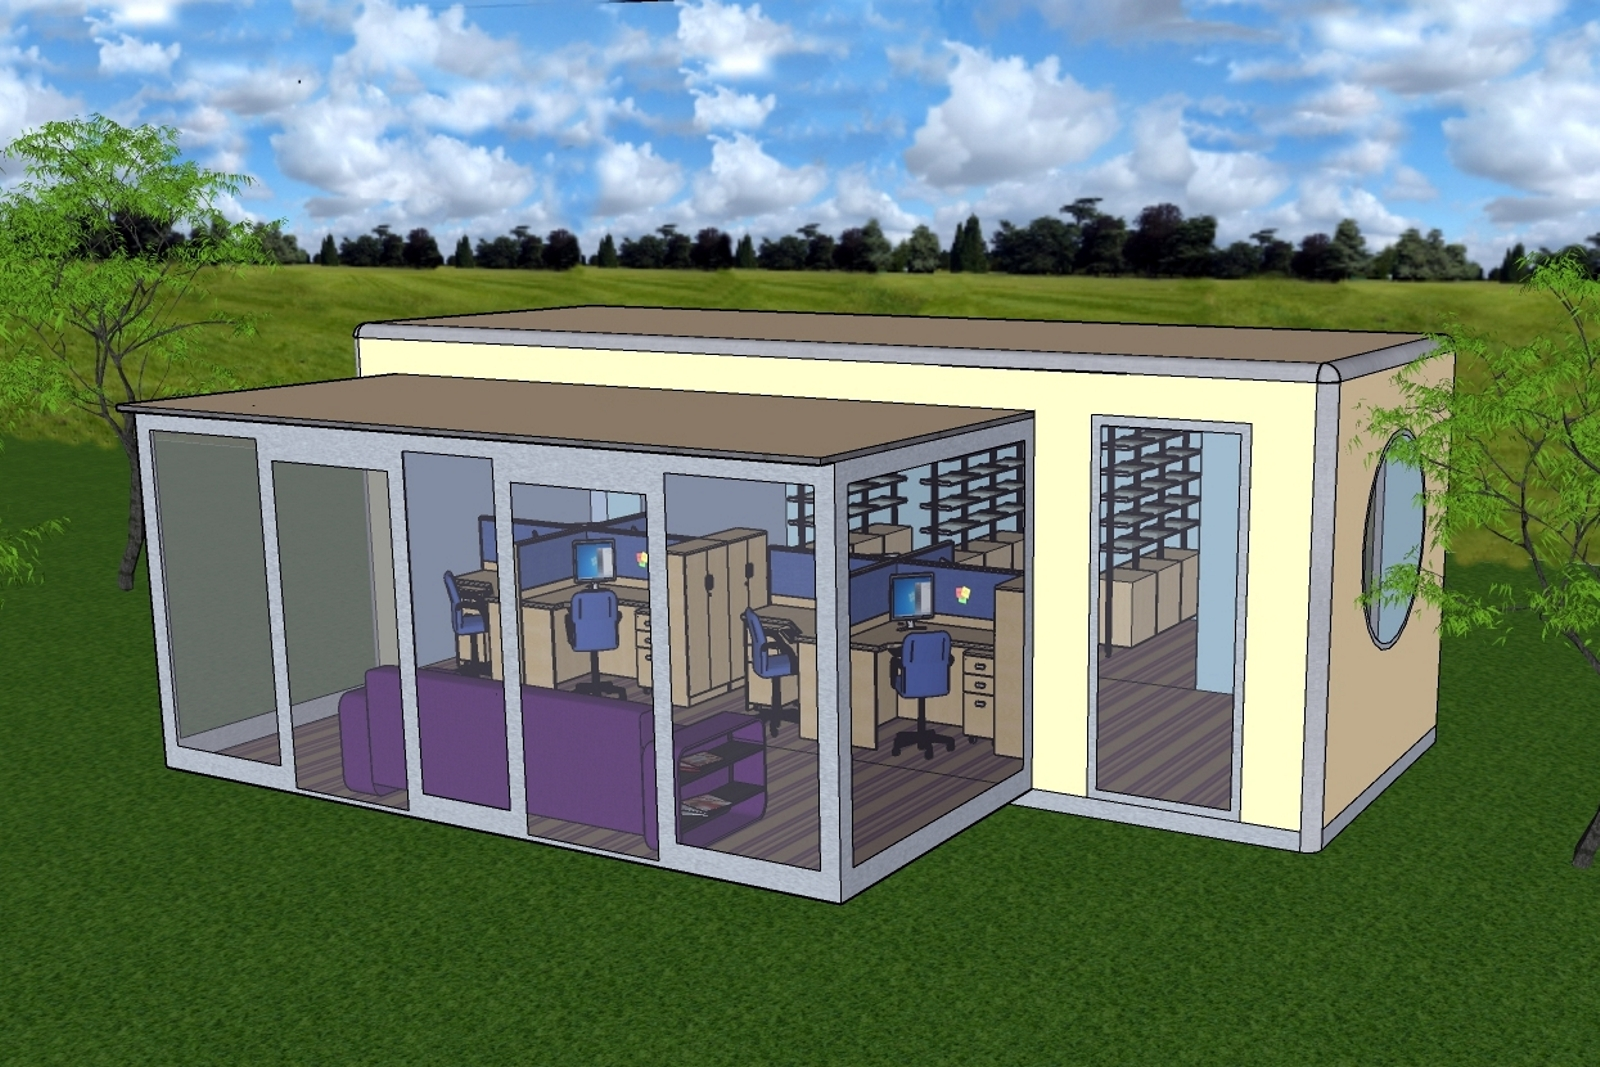 artists impression of a portable building with double extension